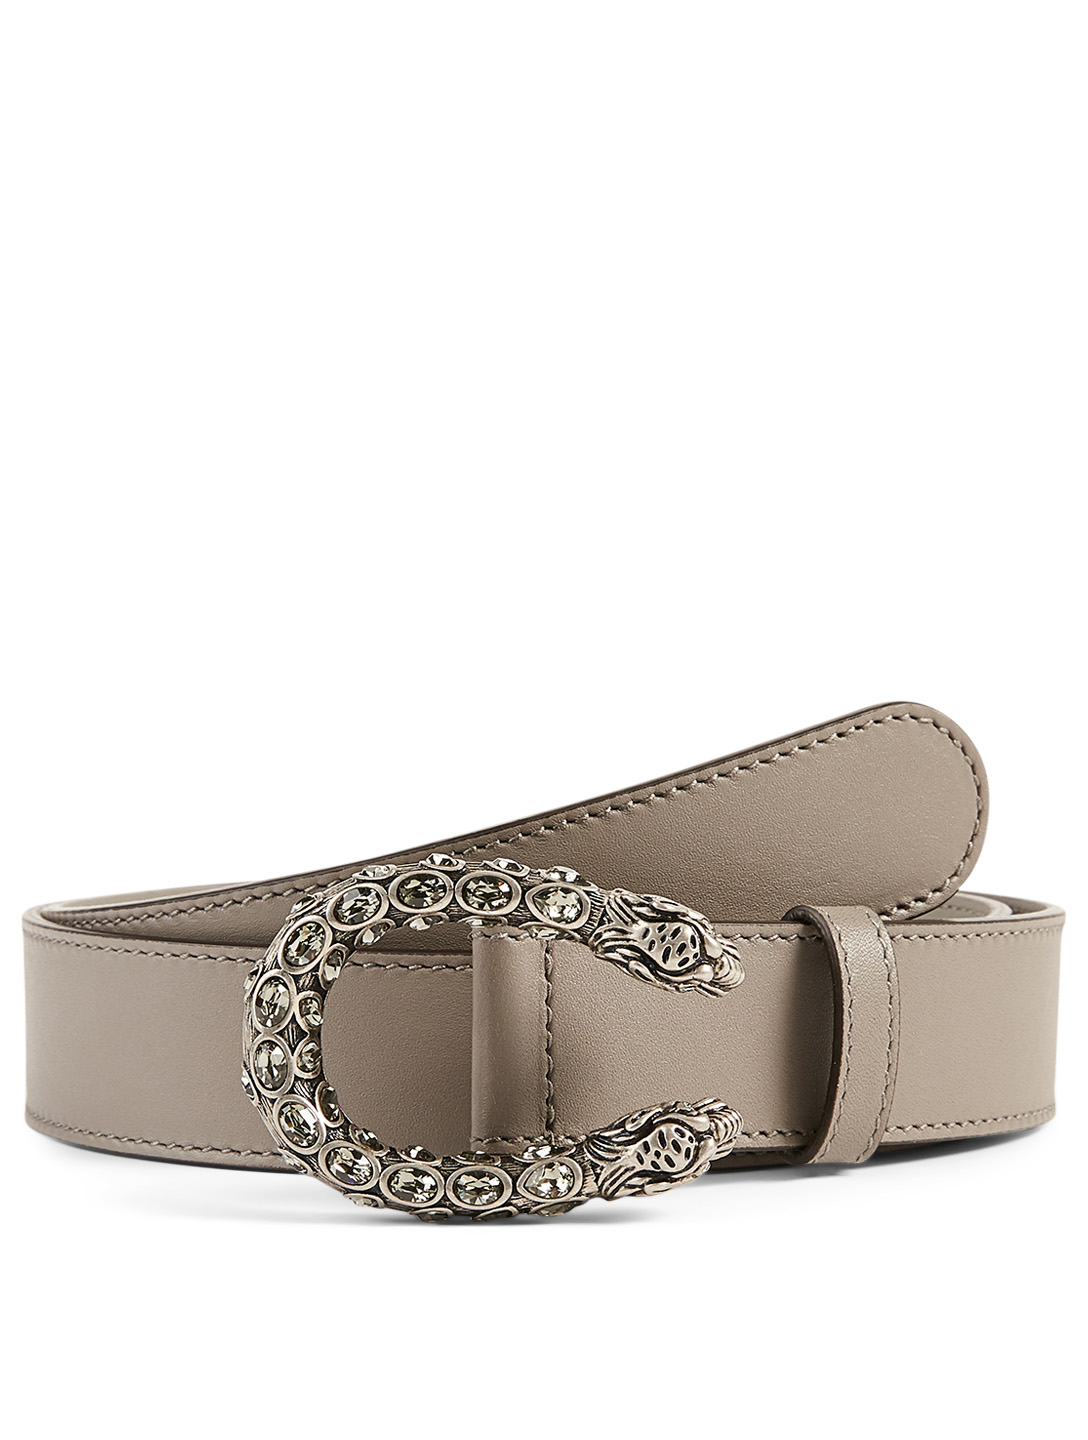 GUCCI Leather Belt With Crystal Dionysus Buckle Women's Grey